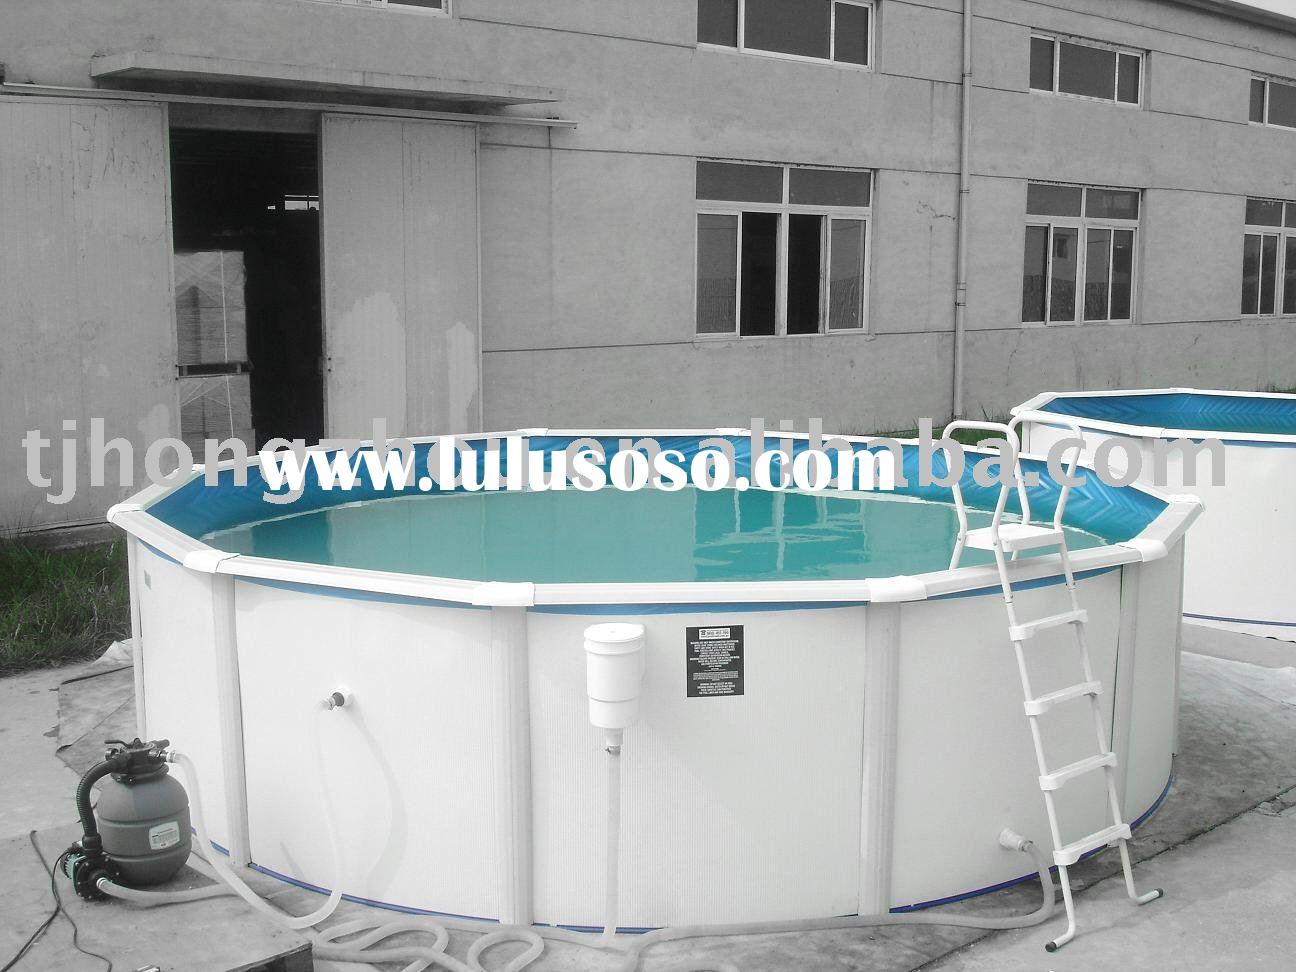 Acylic Above Ground Swimming Pool Jcs Ss1 For Sale Price China Manufacturer Supplier 934061